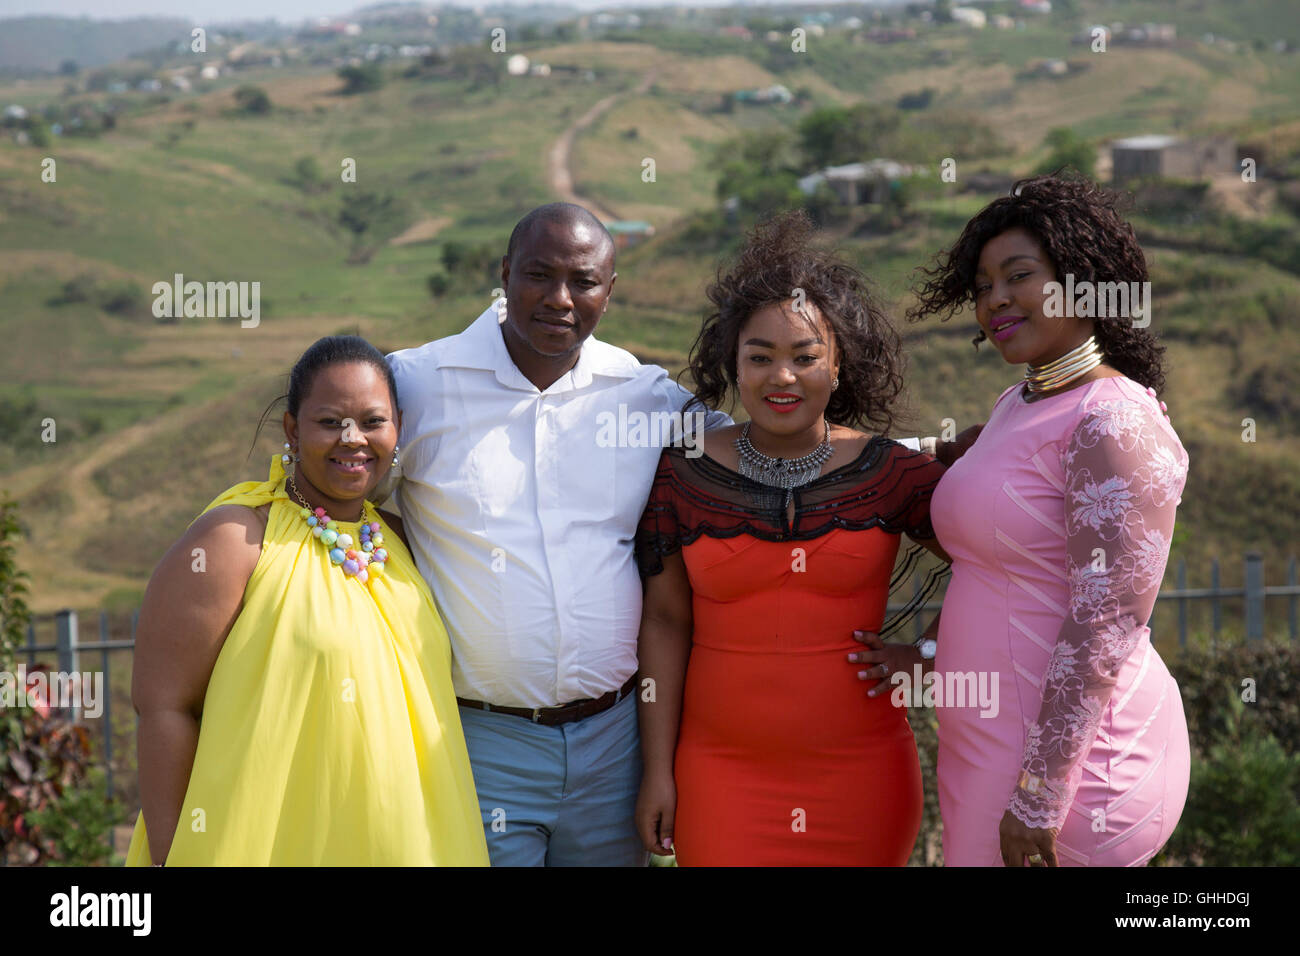 Polygamy dating south africa